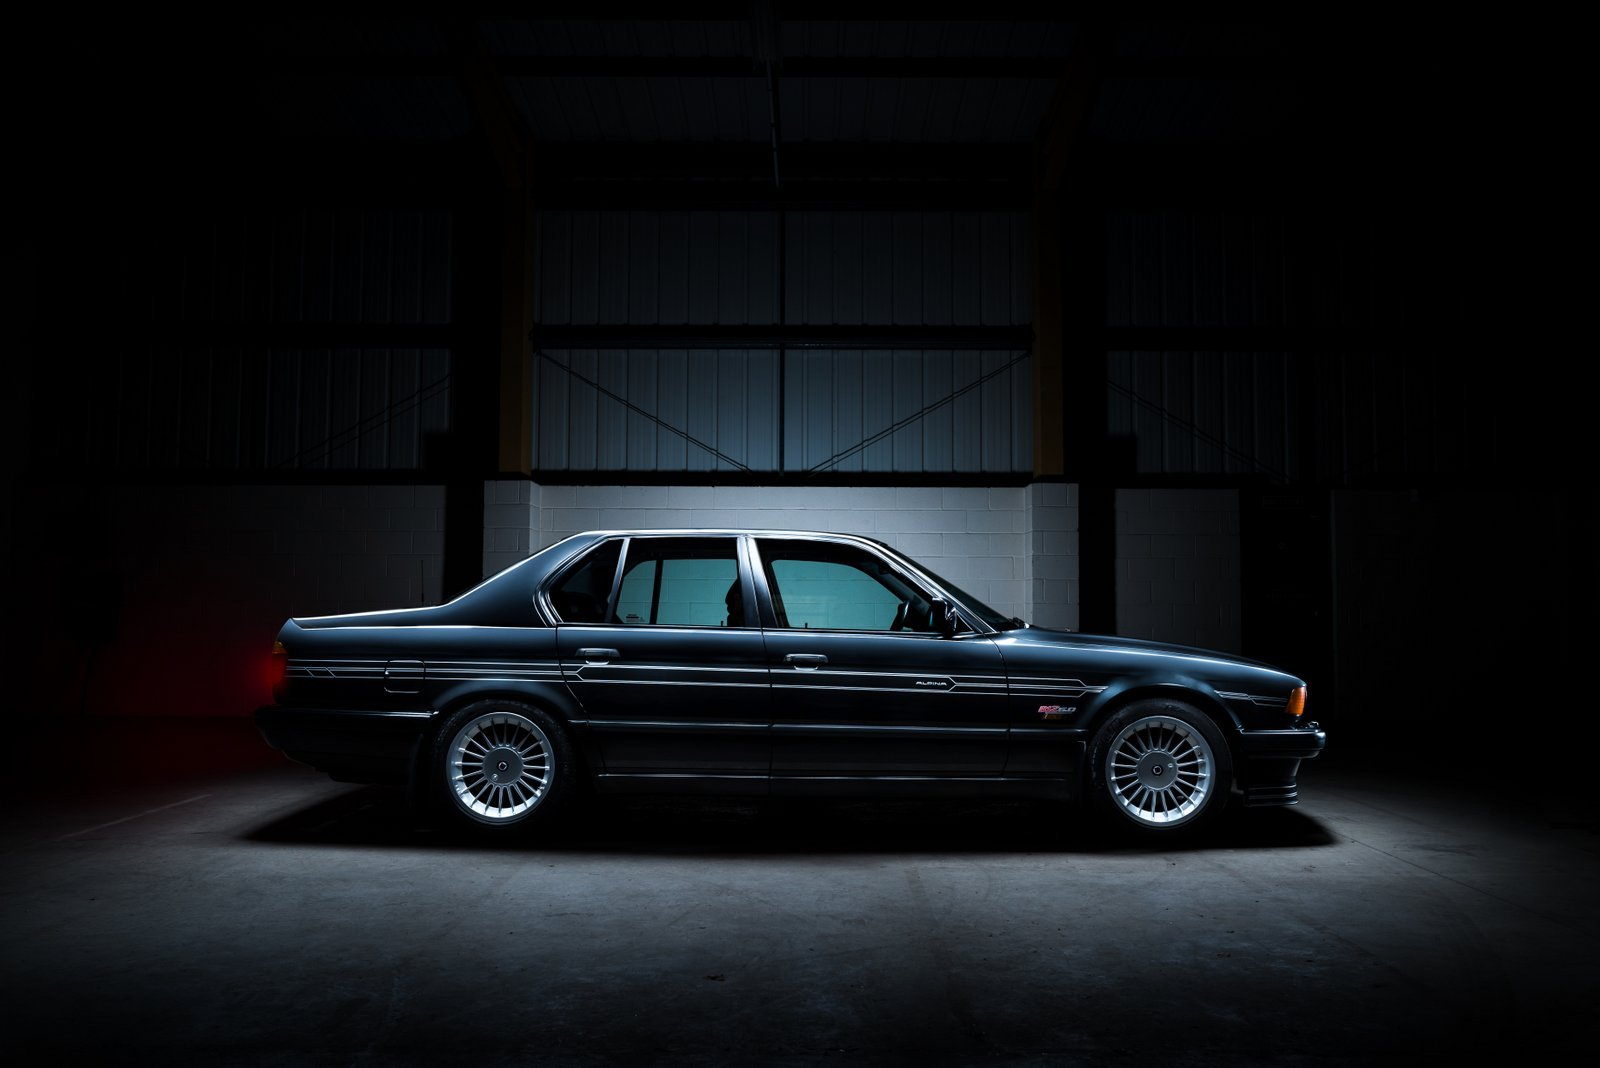 1990 BMW Alpina B12 5.0 e32 RHD 1 of 5 Produced For Sale (picture 1 of 6)